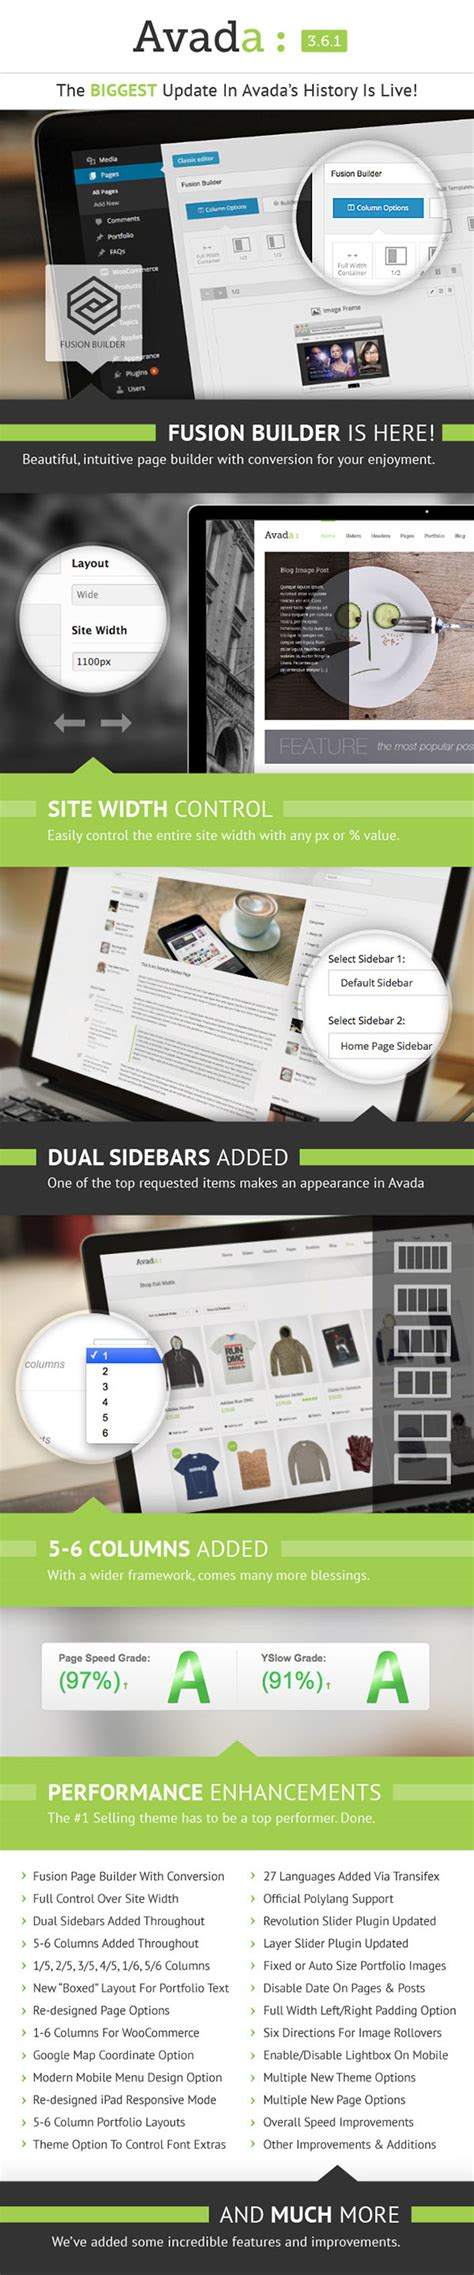 avada theme nextgen gallery avada responsive multi purpose theme on behance